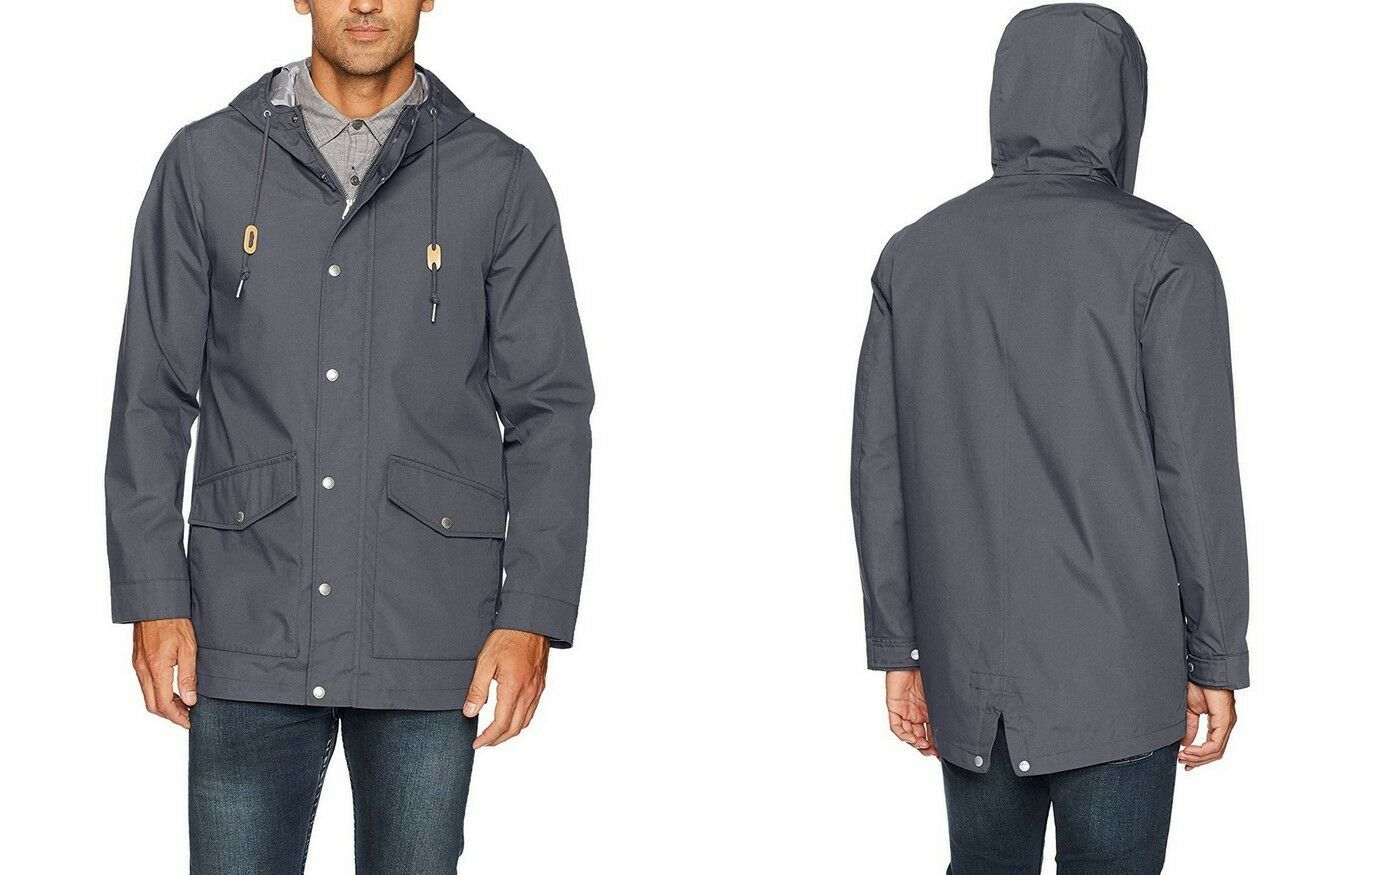 Primary image for Levi's Performance Men's Water Resistant Hooded Fishtail Parka Jacket Charcoal M